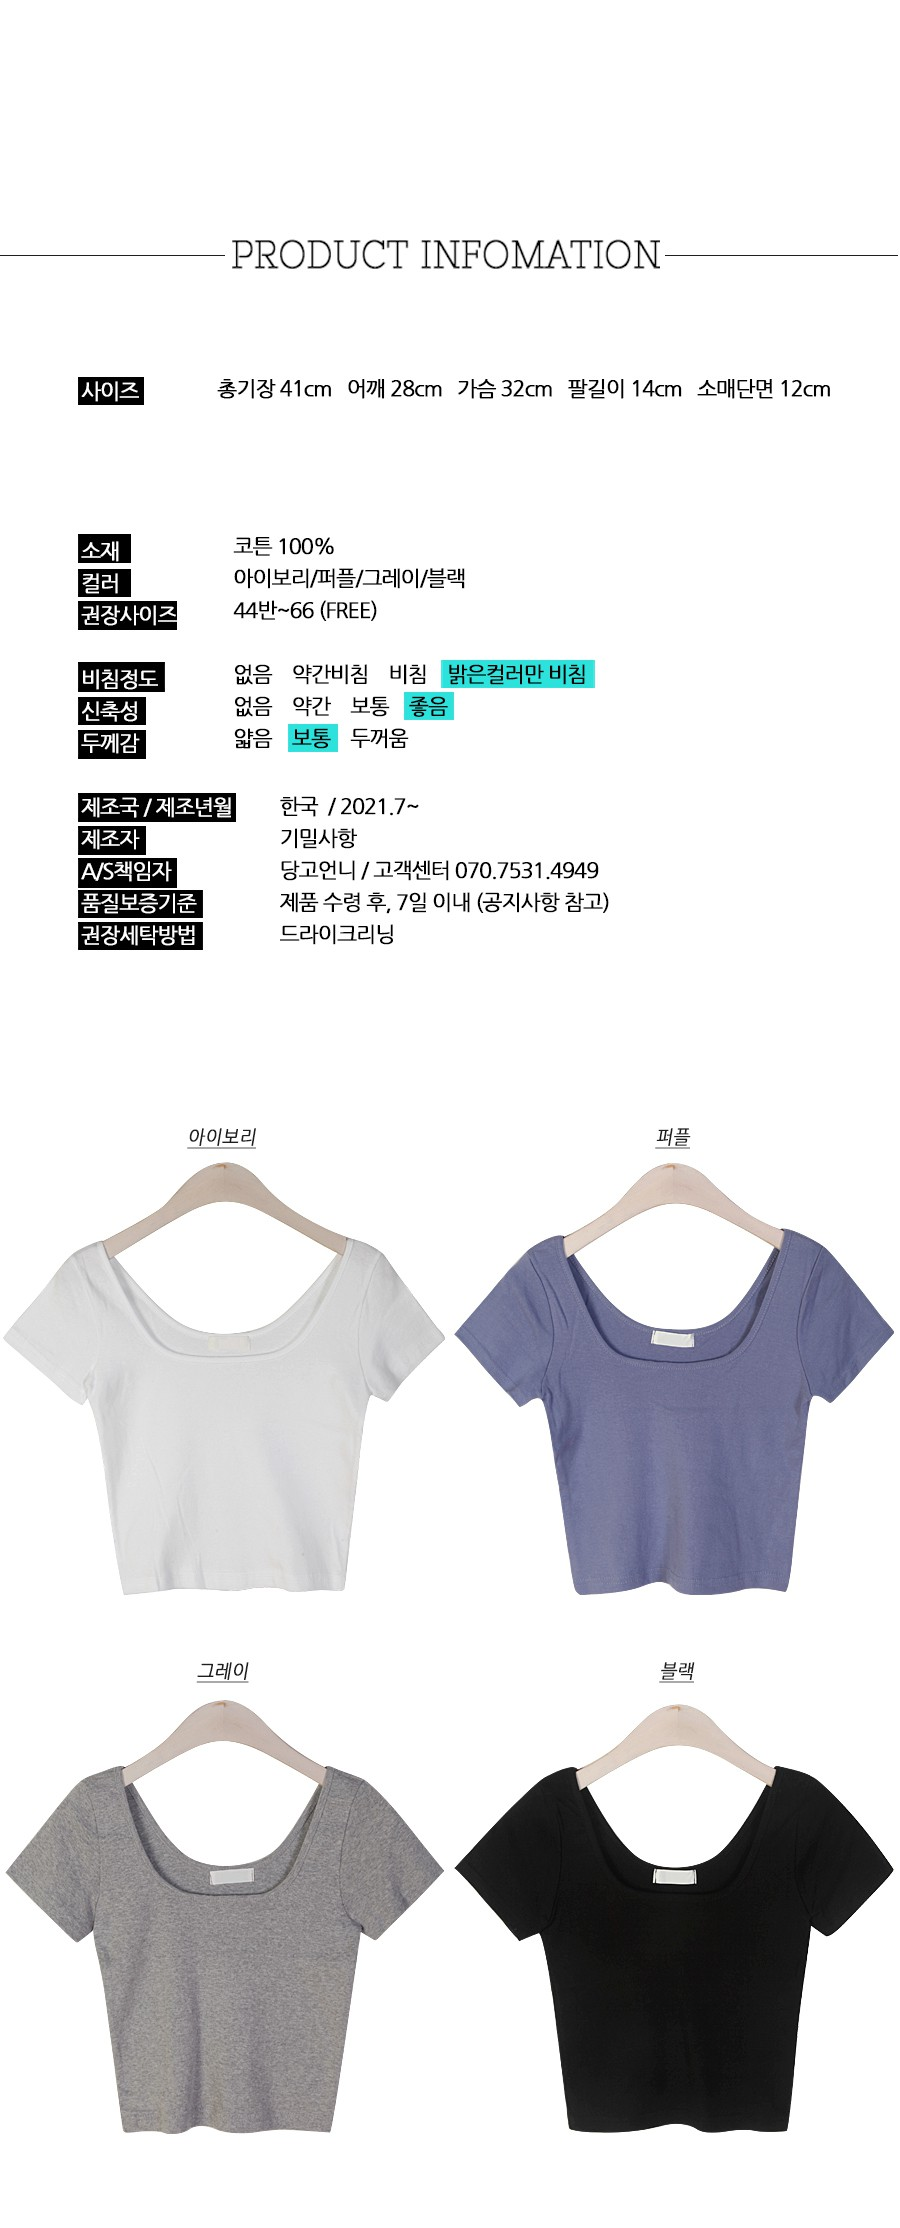 Farming square jol T slim fit with glam charm :D